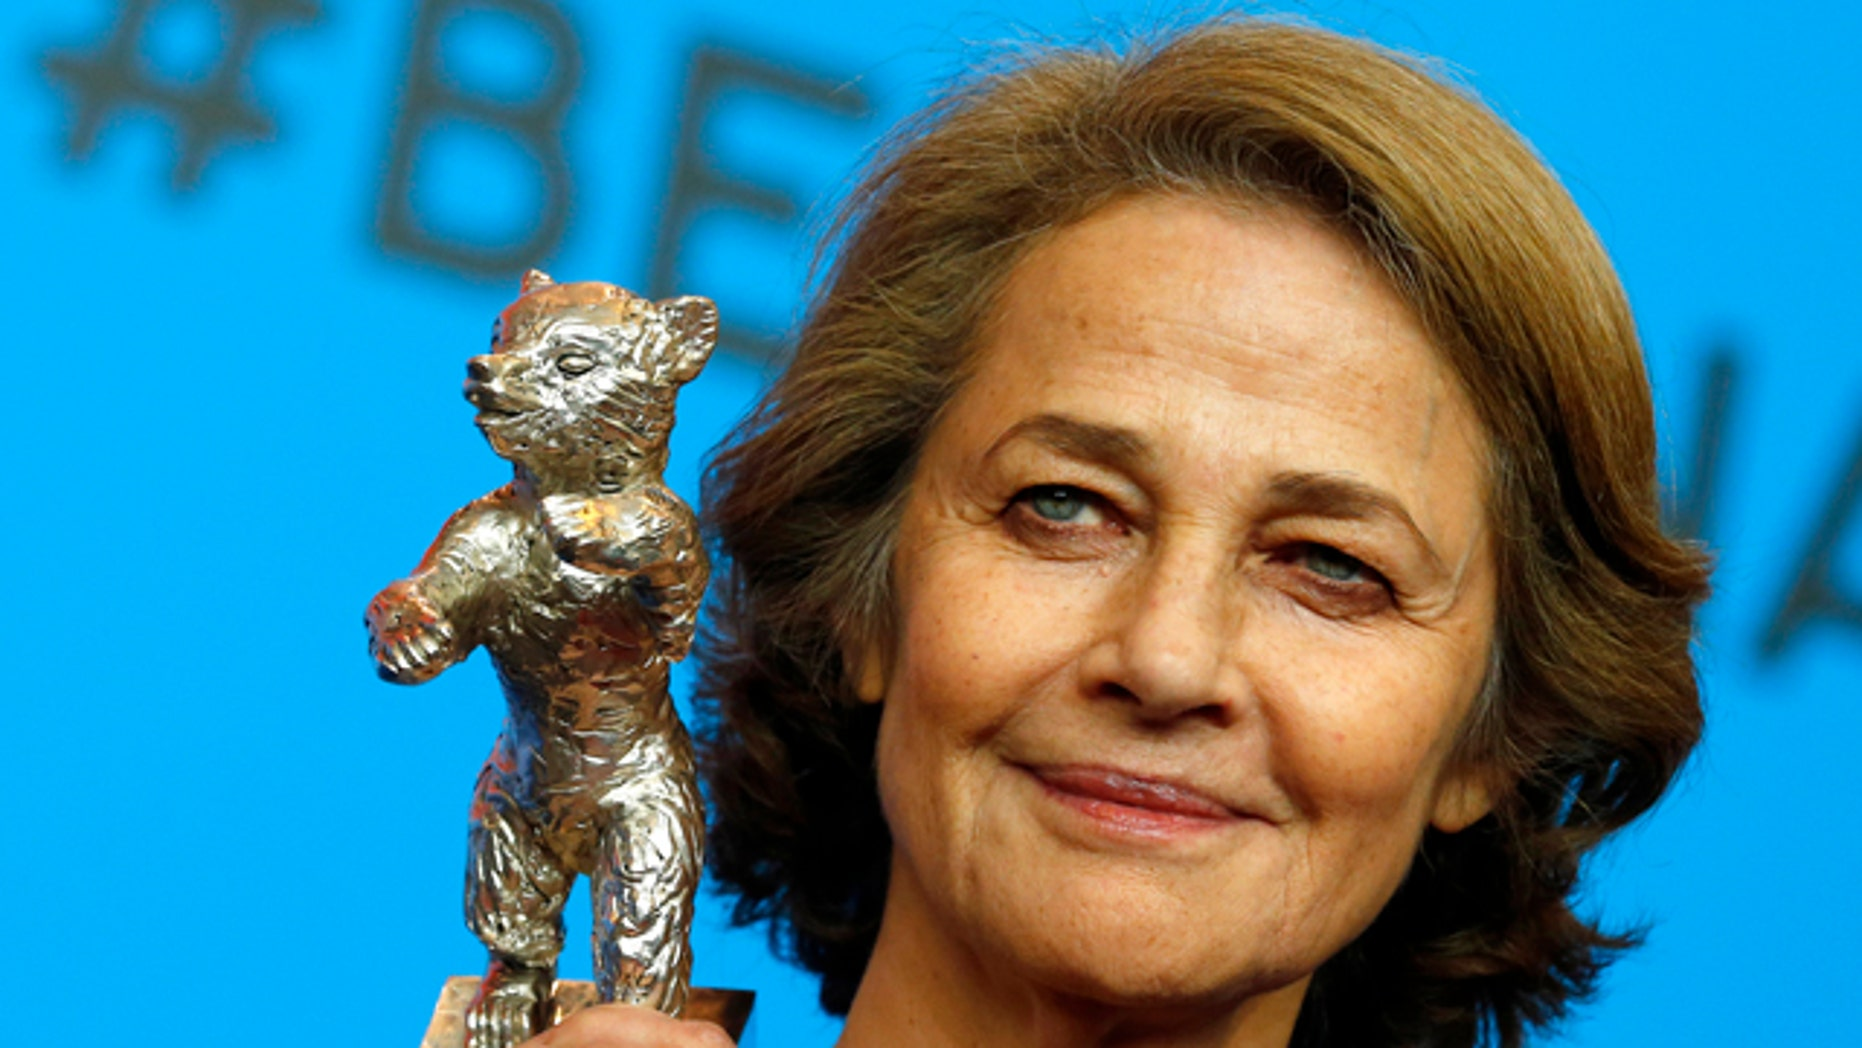 Feb. 14, 2015. Charlotte Rampling holds the Silver Bear for Best Actress for her role in 45 years after the award ceremony at the 2015 Berlinale Film Festival in Berlin, Germany.